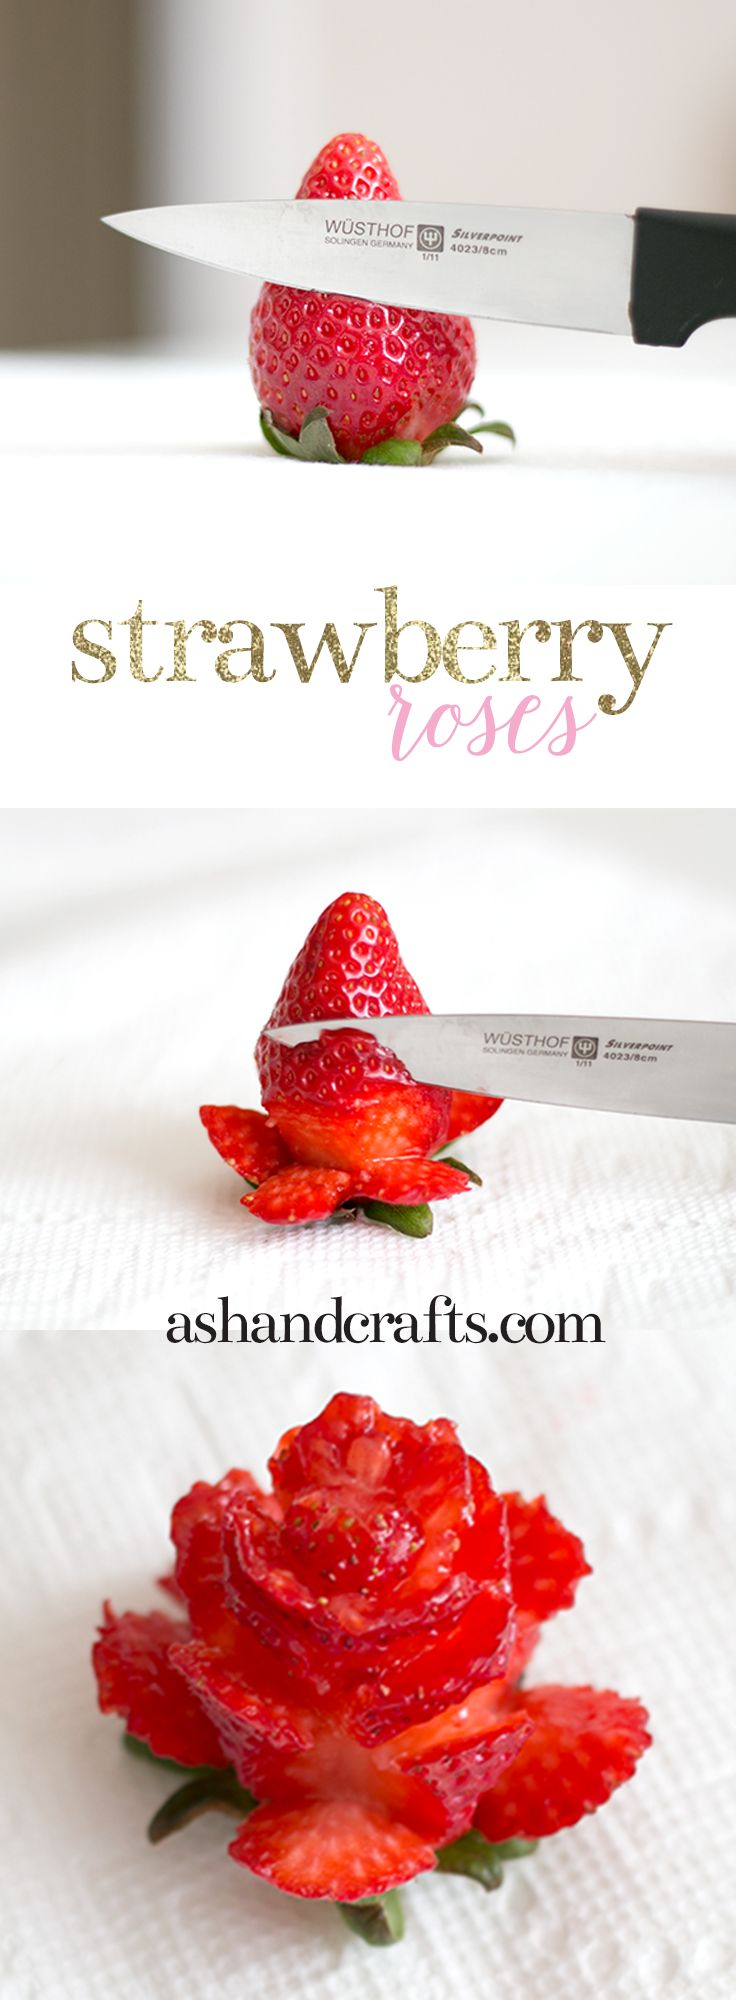 Learn how to cut strawberries into roses. See this tutorial and more at ashandcrafts.com | healthy food hacks |